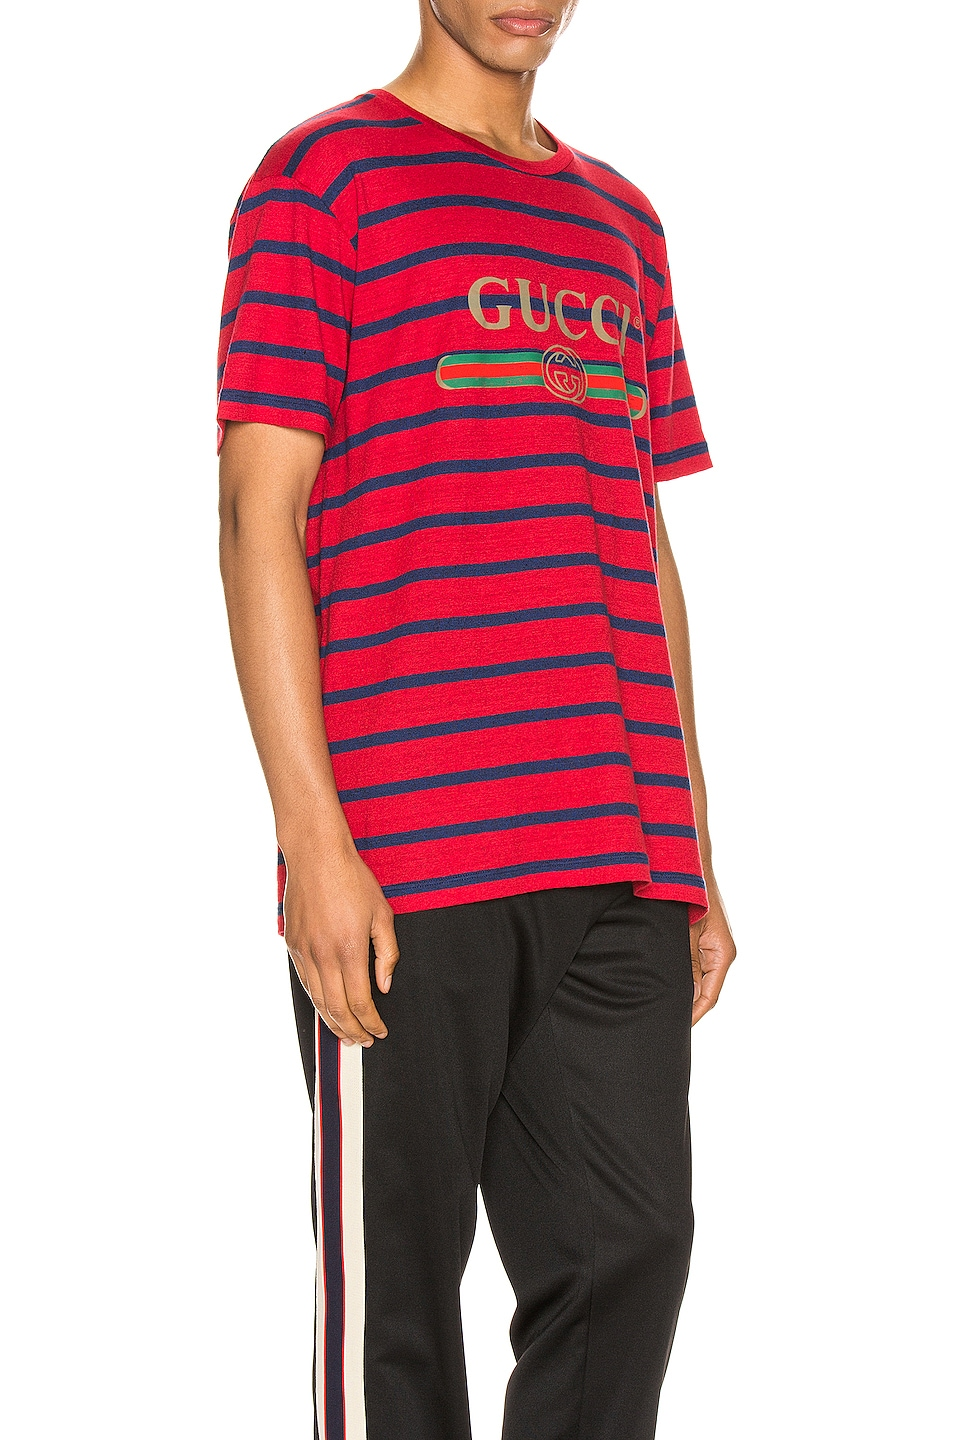 Image 2 of Gucci Logo Striped Tee in Red & Inchiostro & MC